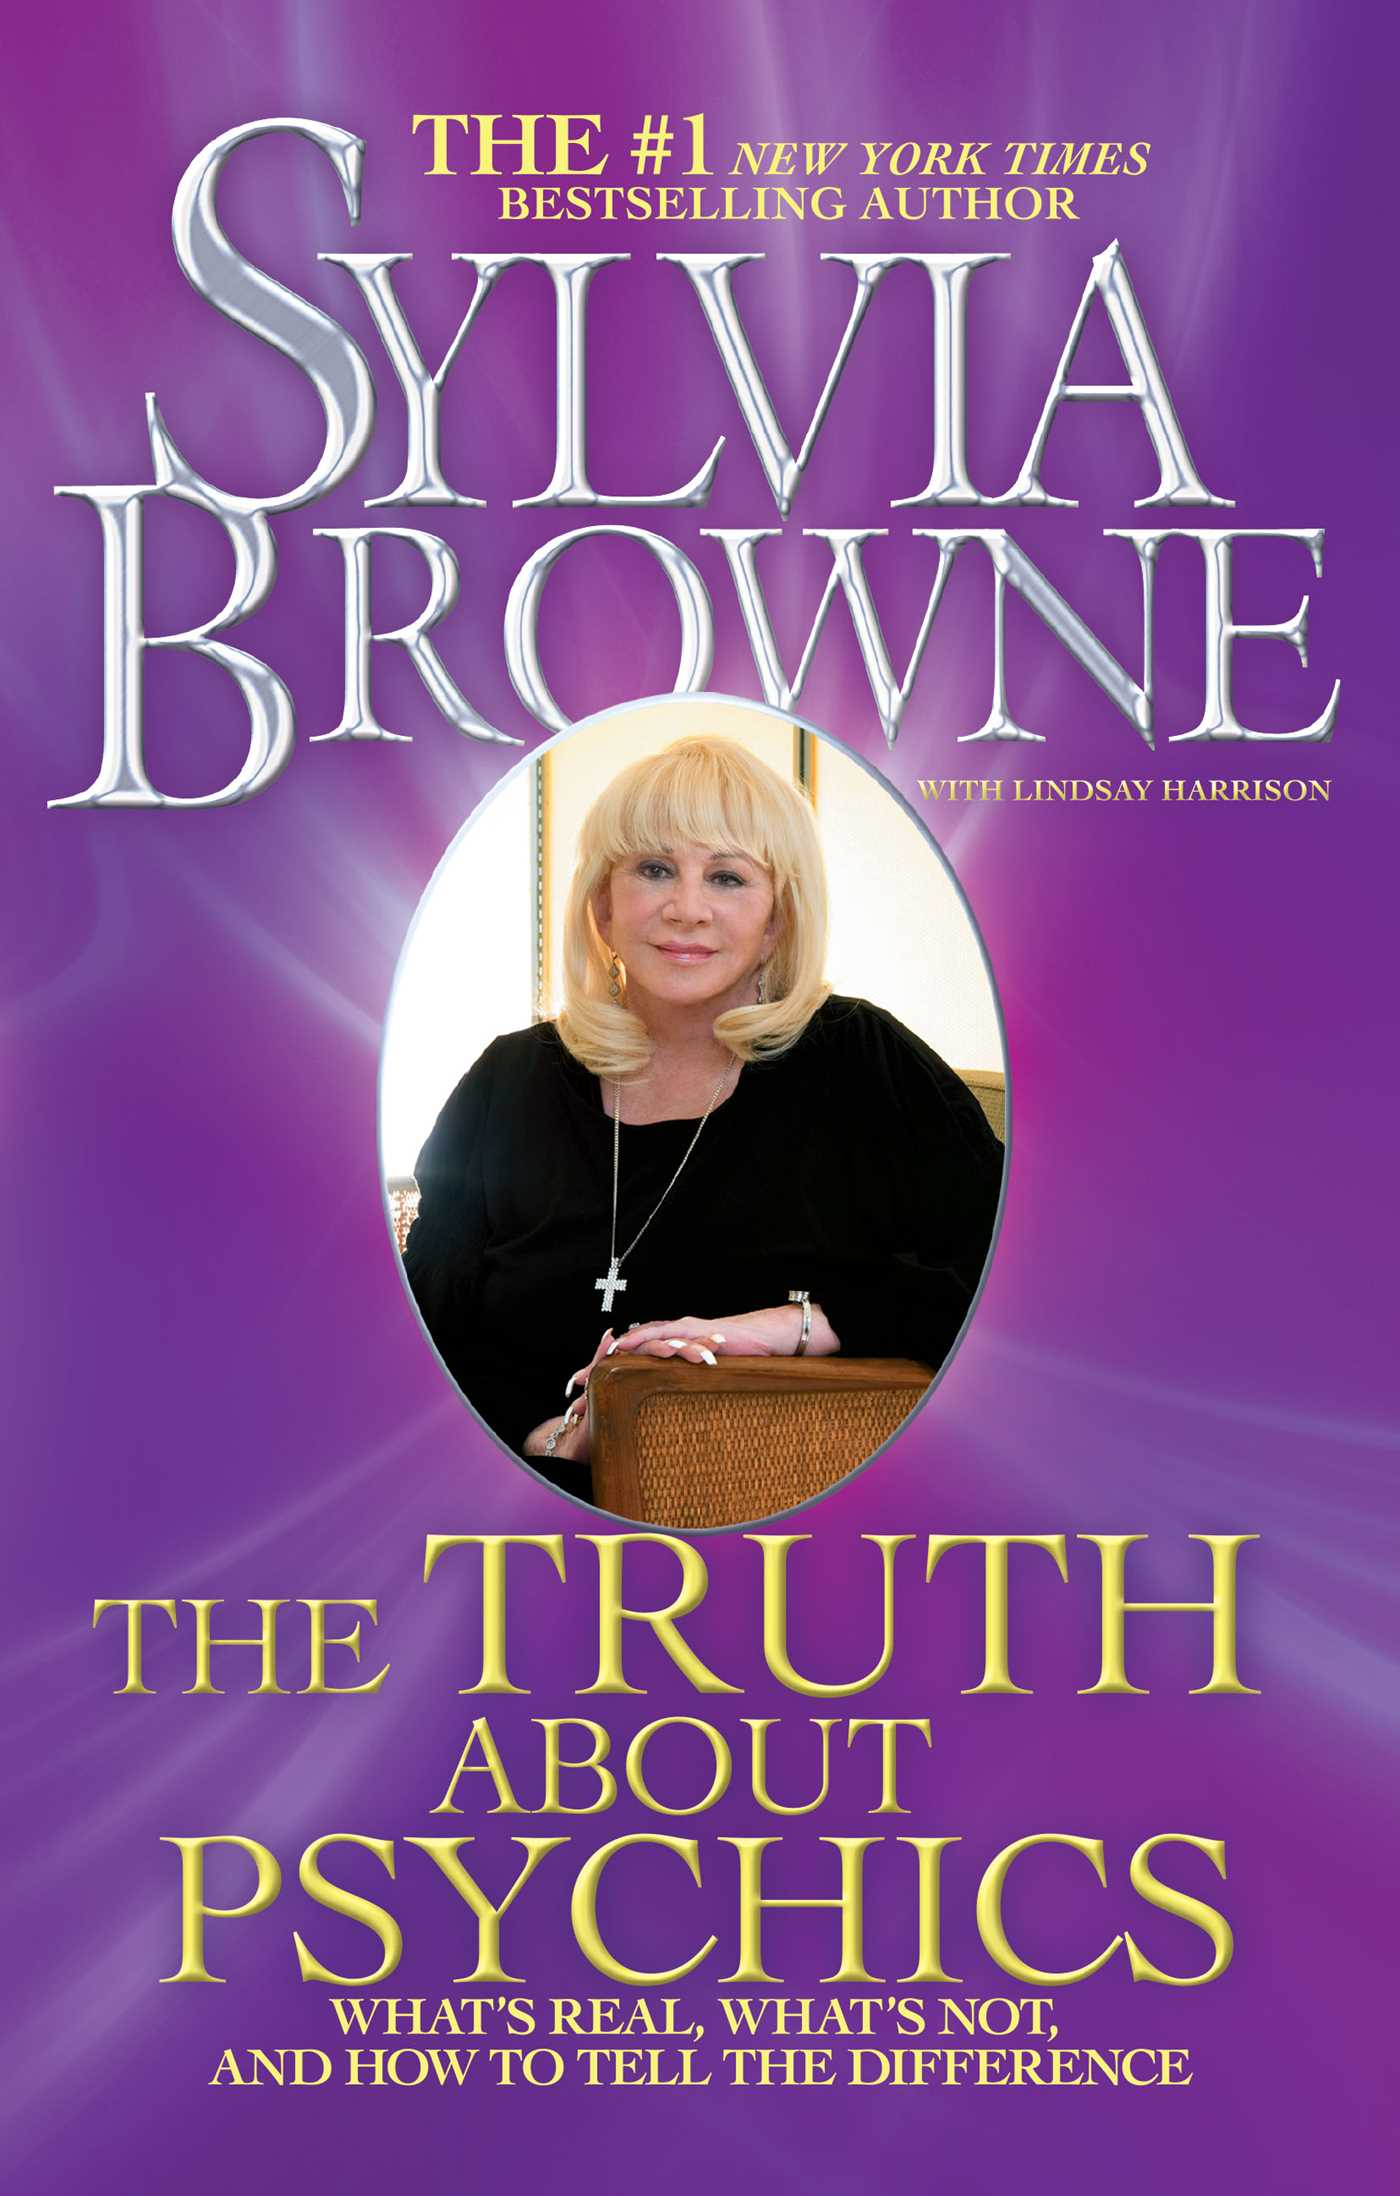 The truth about psychics 9781451691832 hr